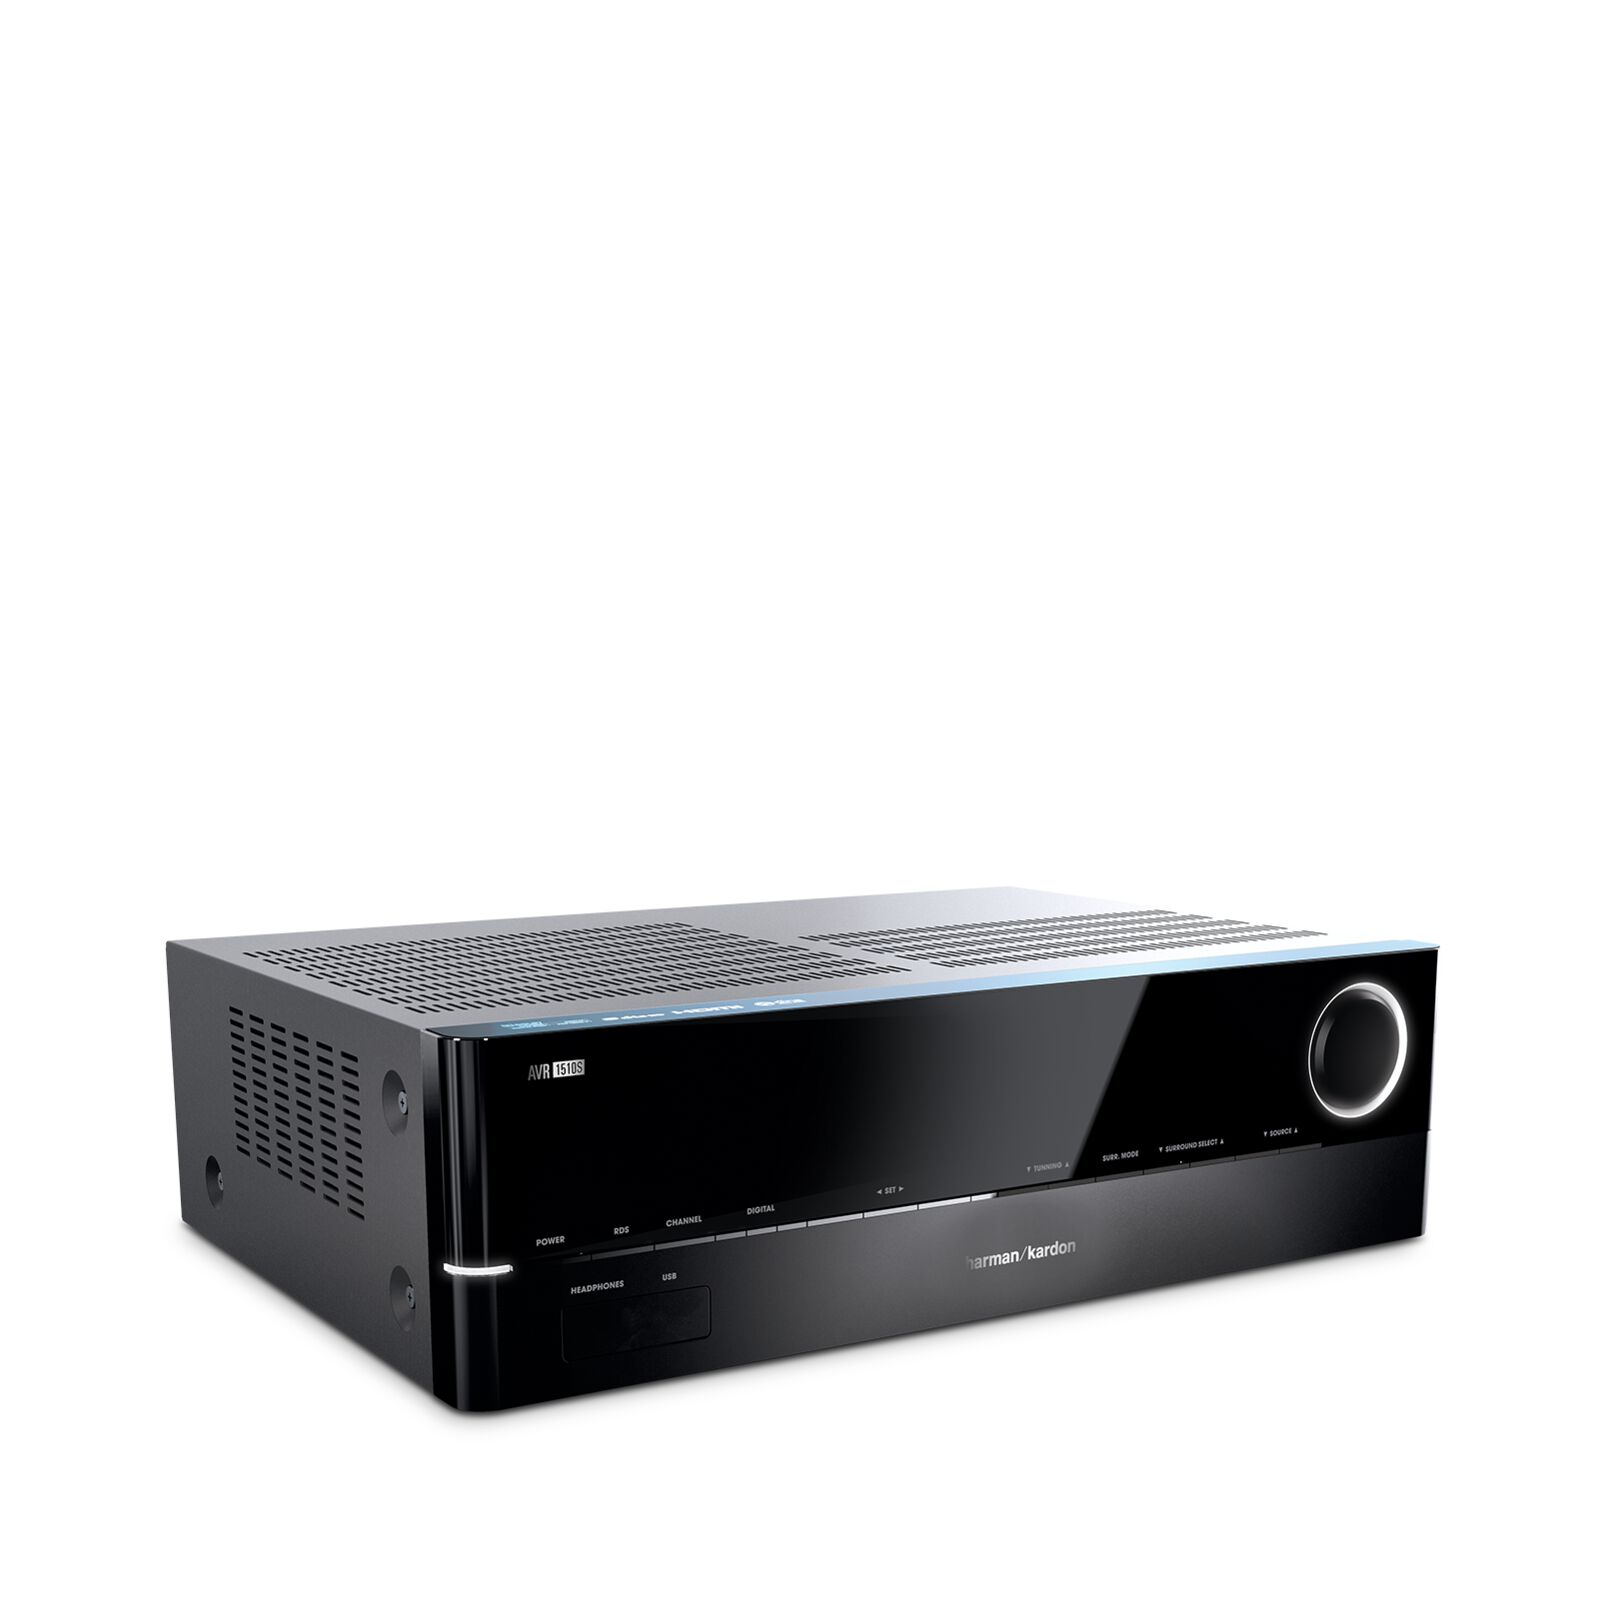 Image of 5.1 AV-receiver Harman Kardon AVR 151S 5x75 W Zwart 4K UltraHD, DLNA, Internetradio, USB